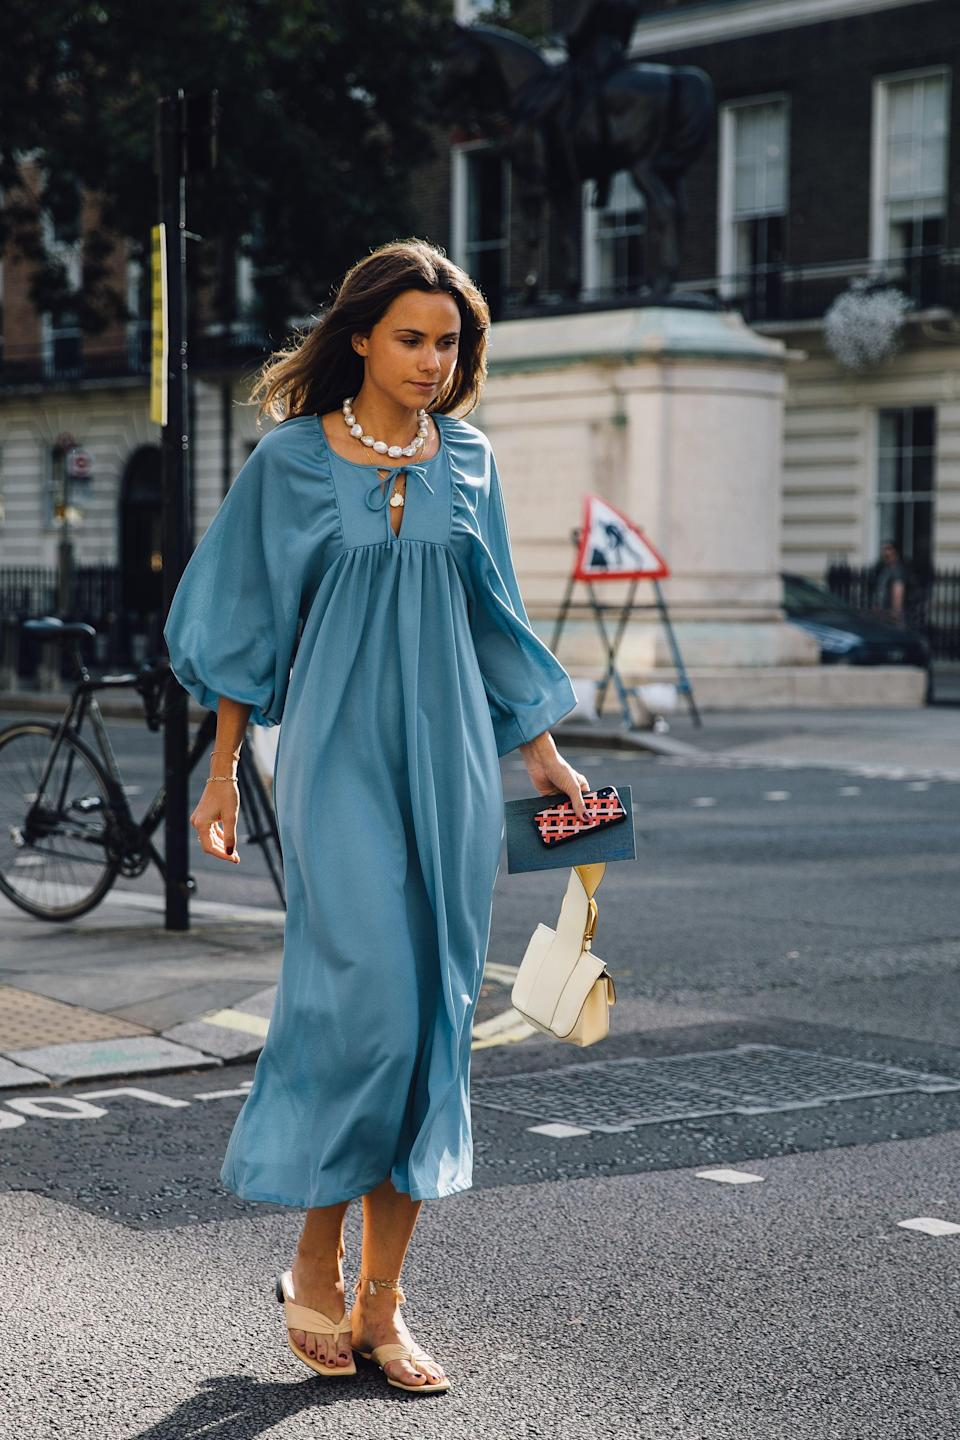 <p>Nothing says summer quite like a breezy dress and flip-flops.</p>